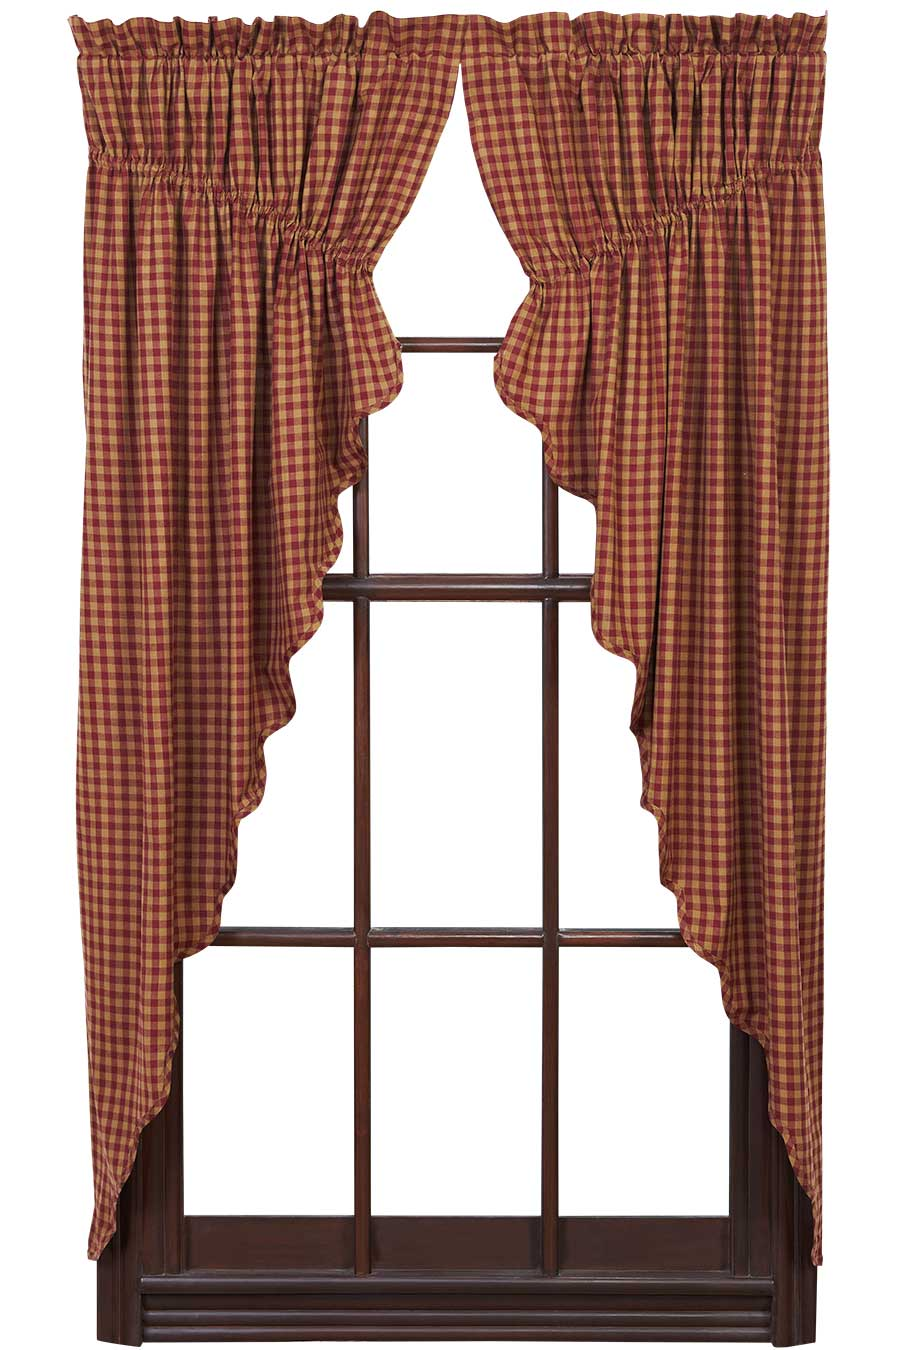 Ninepatch Star Prairie Curtain - 63 inch (Burgundy & Tan Check)